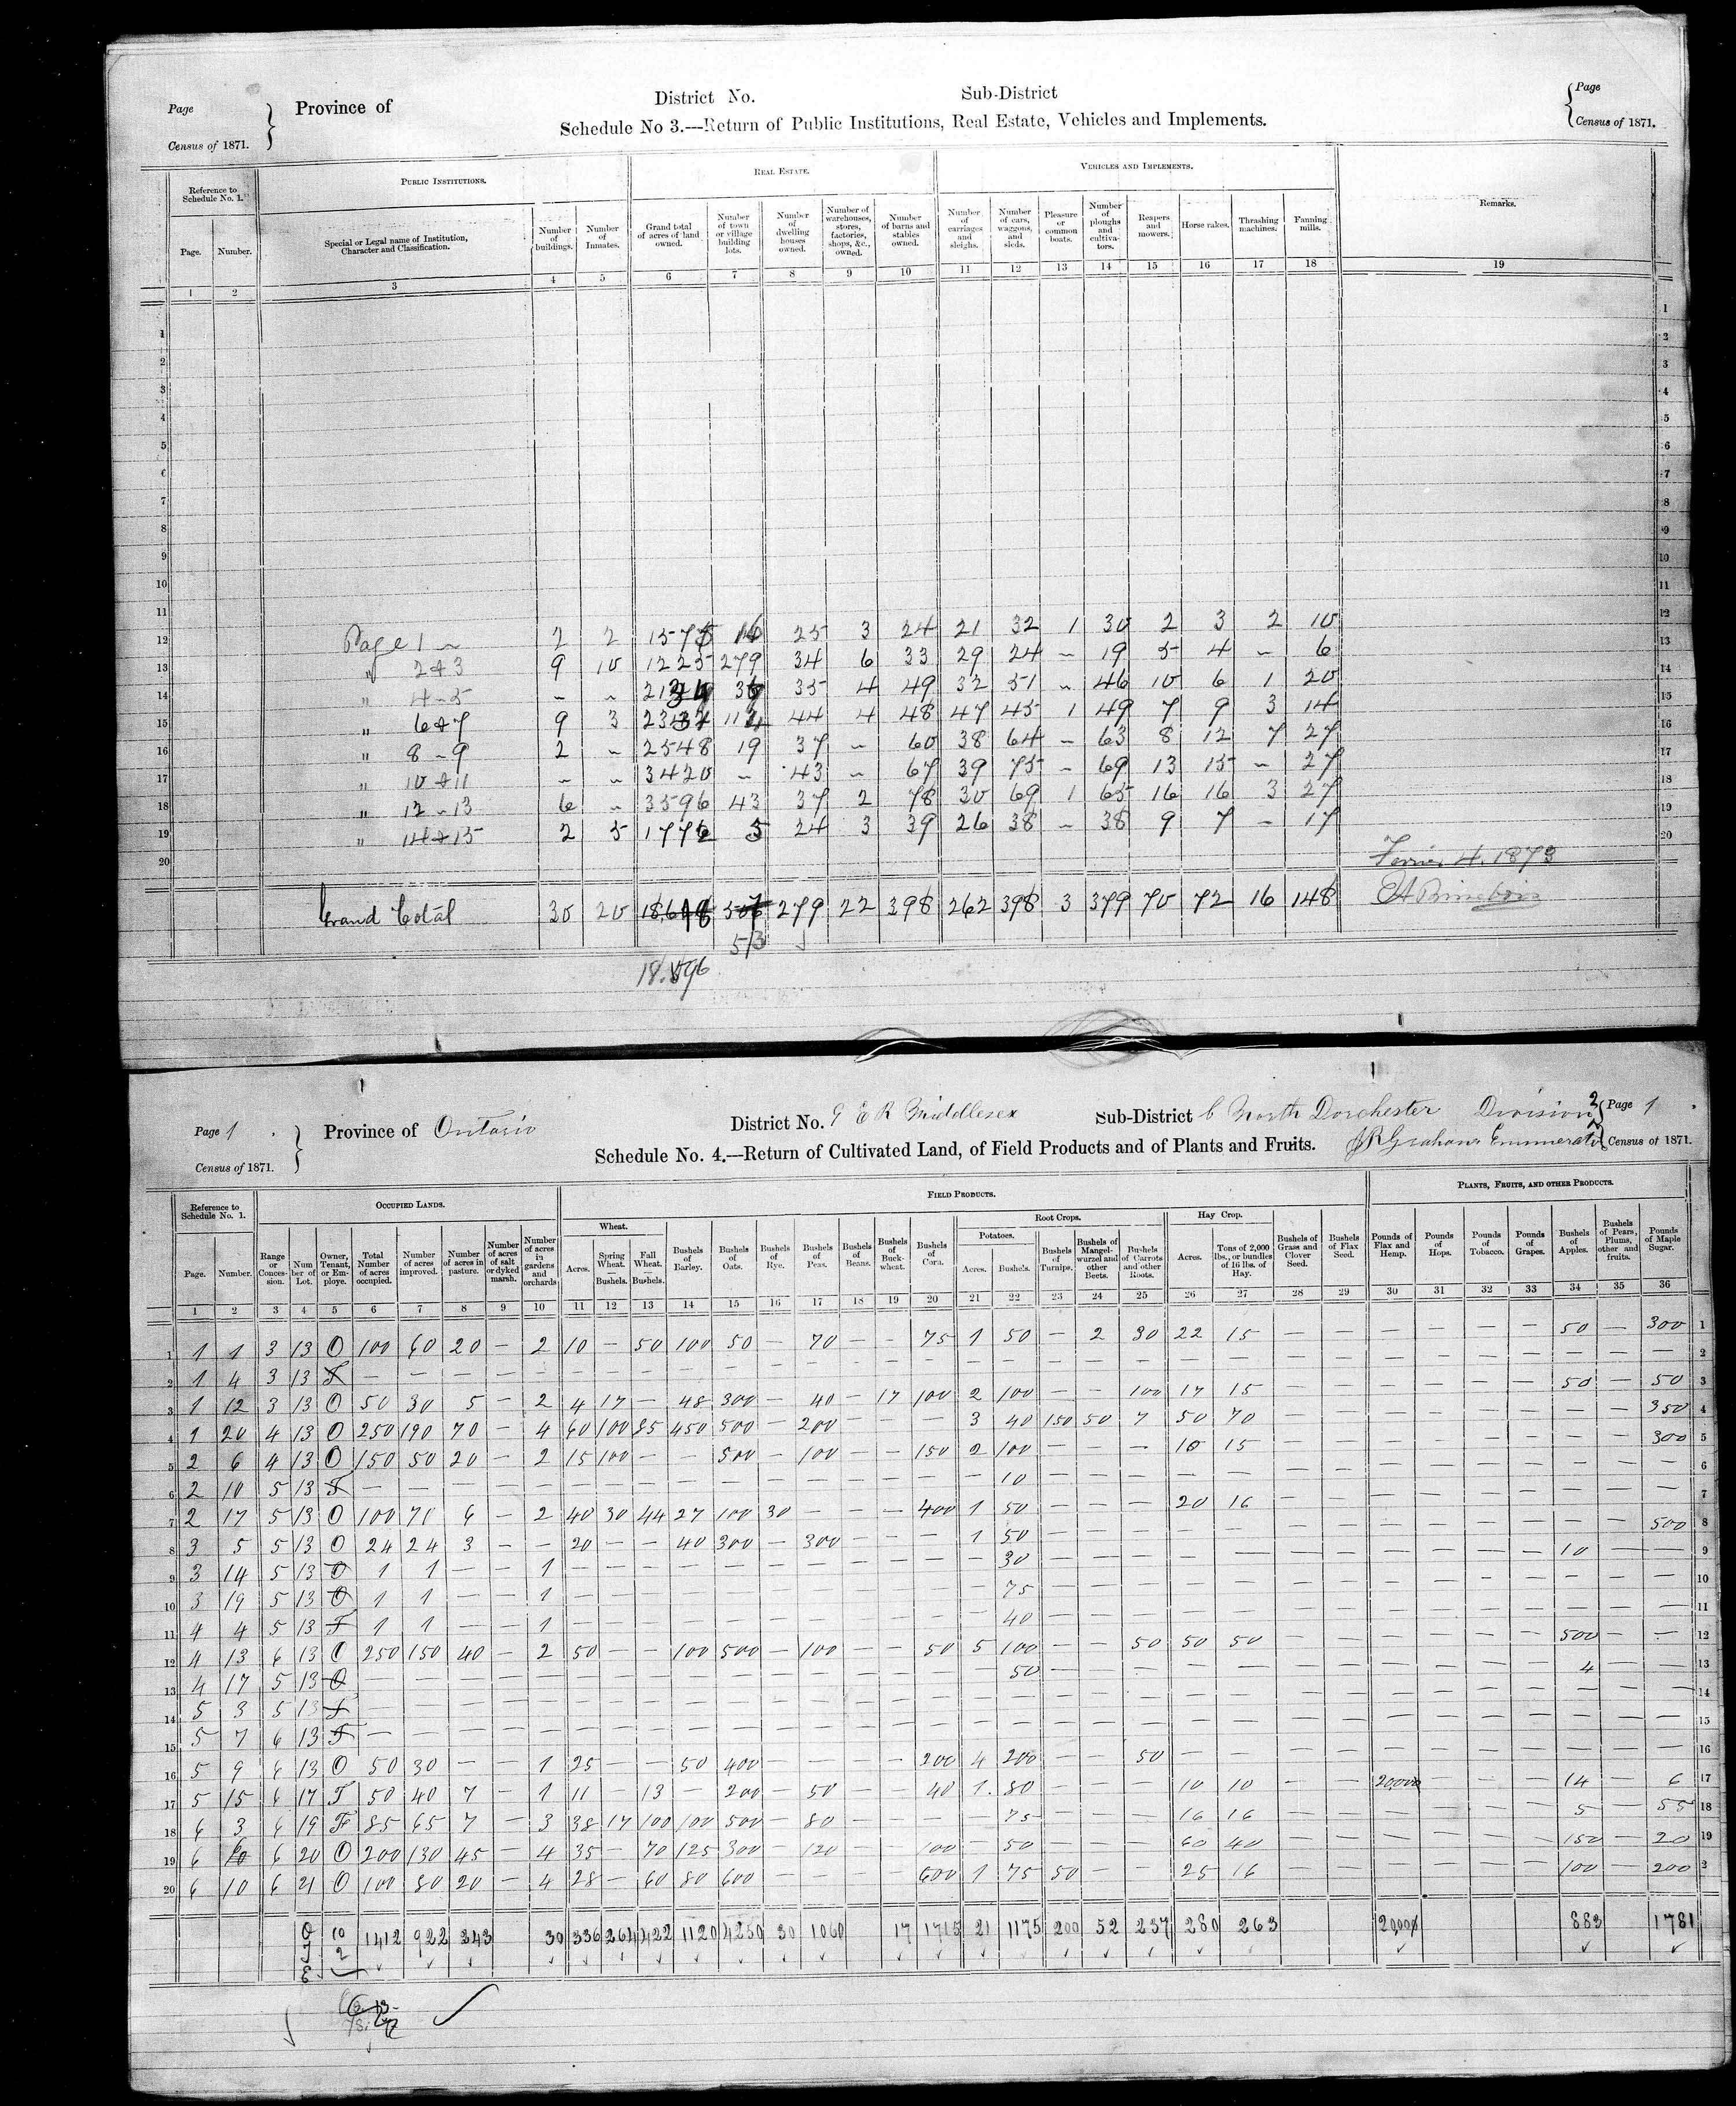 Title: Census of Canada, 1871 - Mikan Number: 142105 - Microform: c-9904